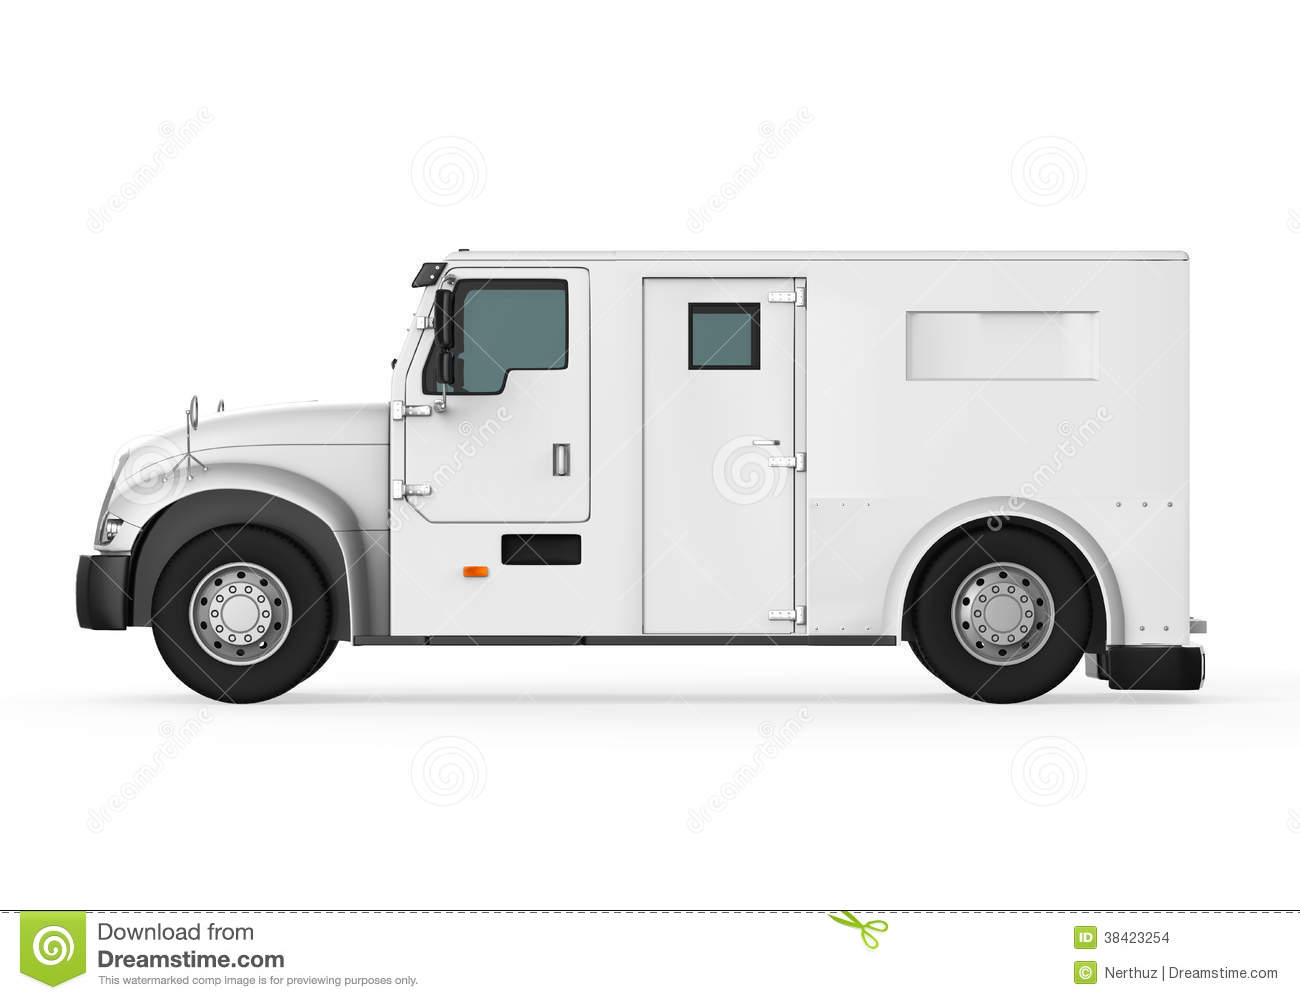 Truck clipart road transport Armored Images transport vehicle Stock